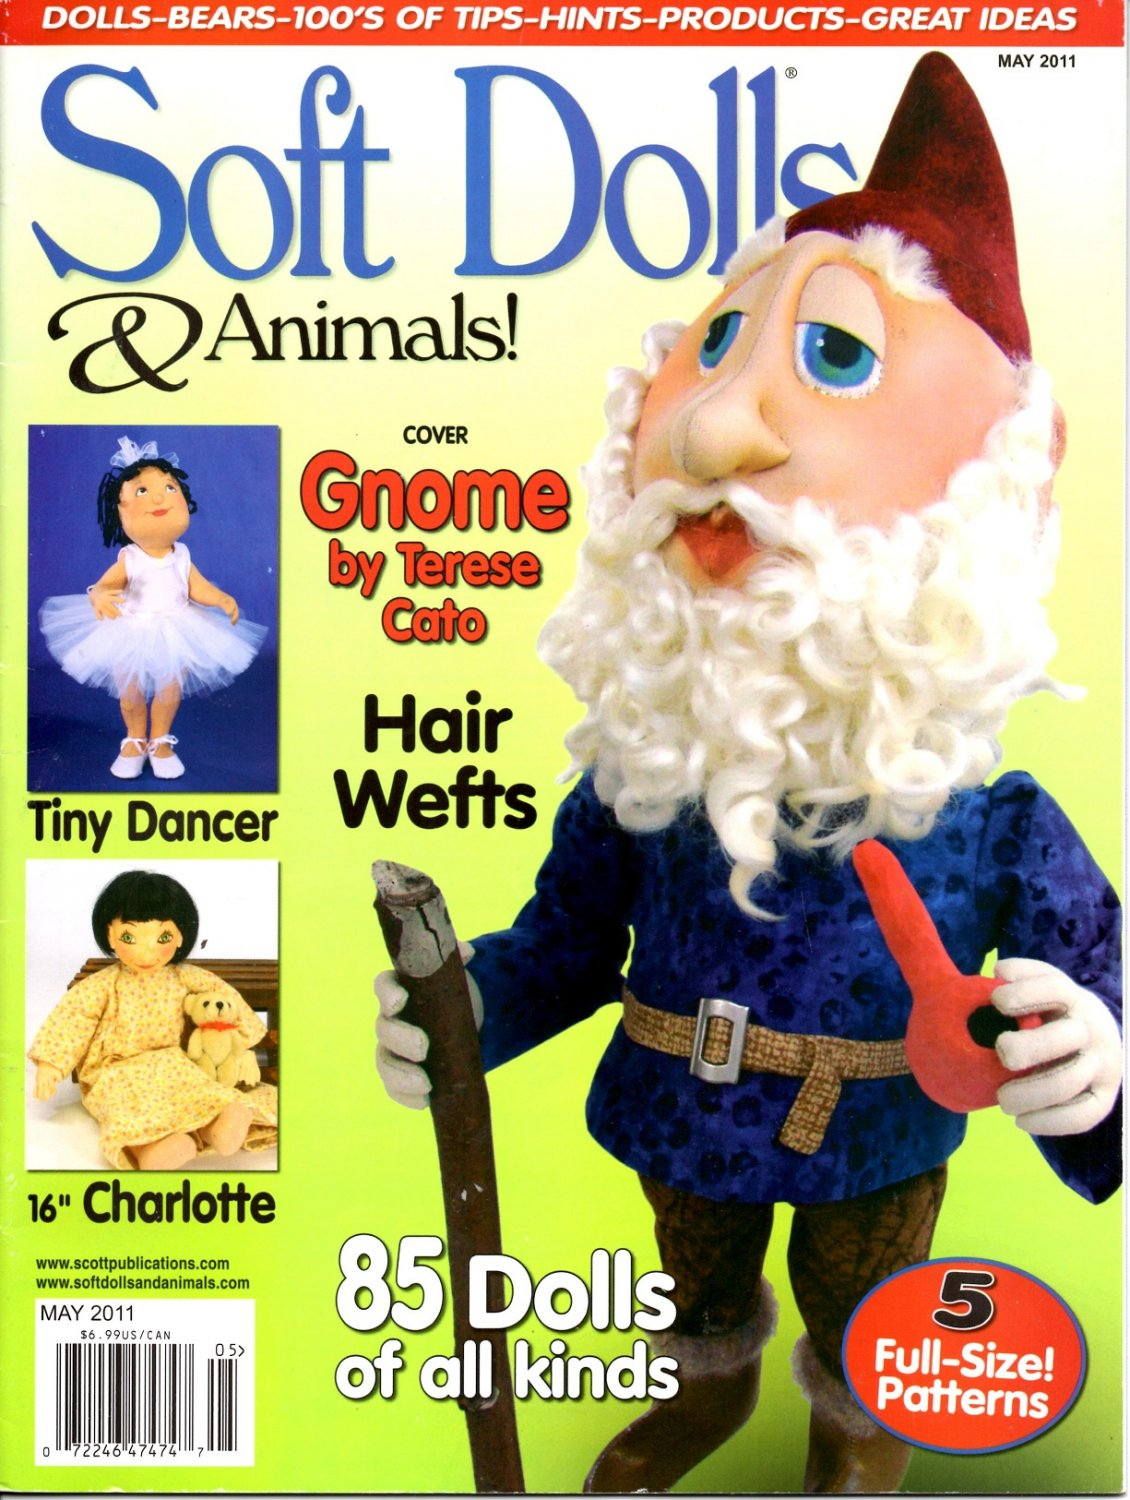 Soft Dolls & Animals! May 2011 Dolls-Bears-100's of Tips-Hints-Products-Great Ideas magazine